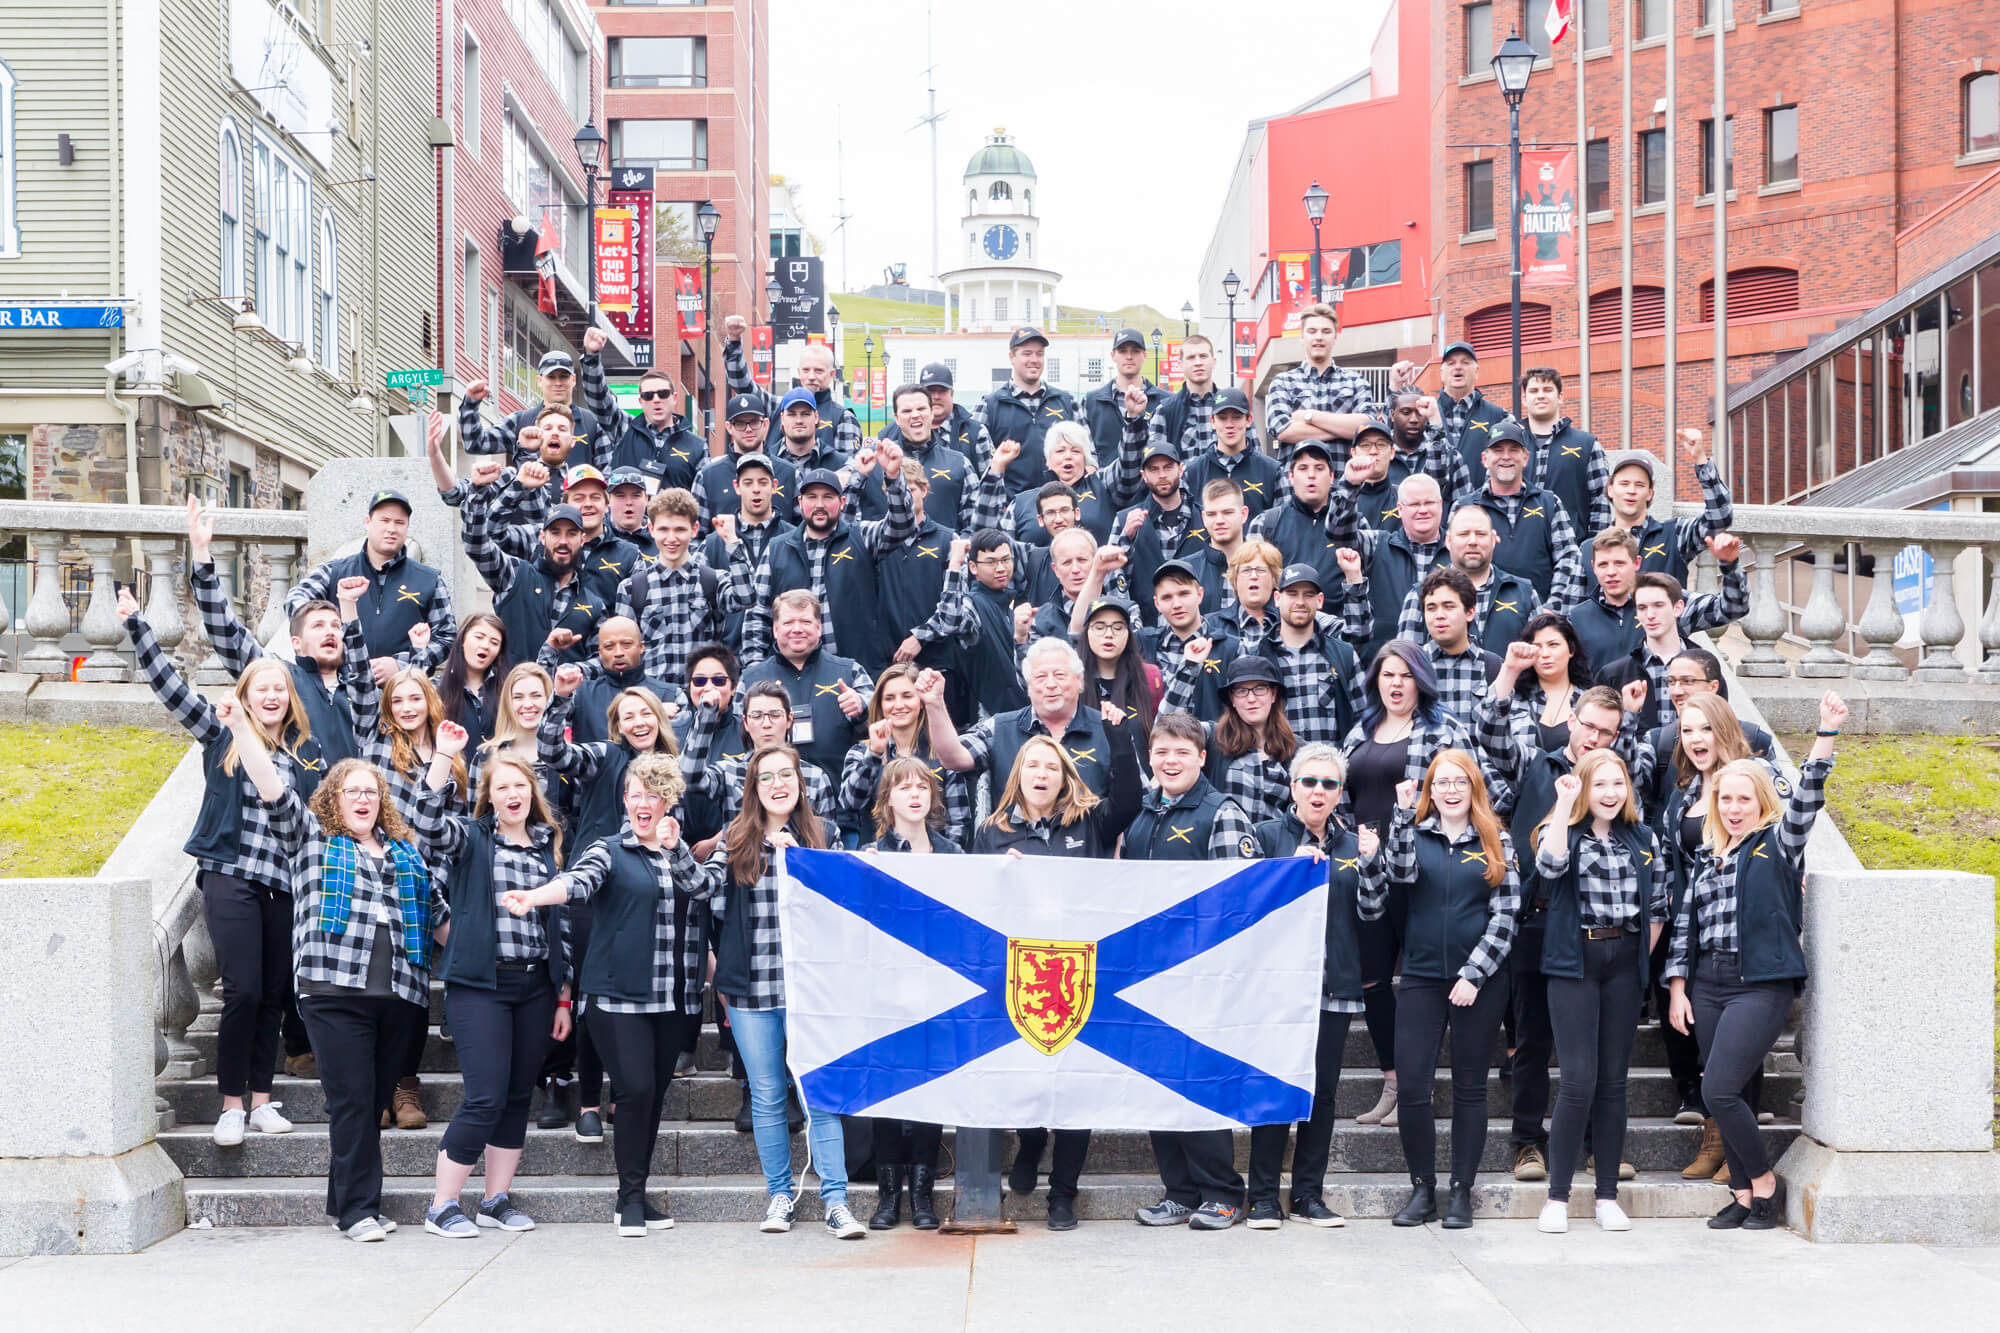 Group photo of the large team holding a Nova Scotia Flag